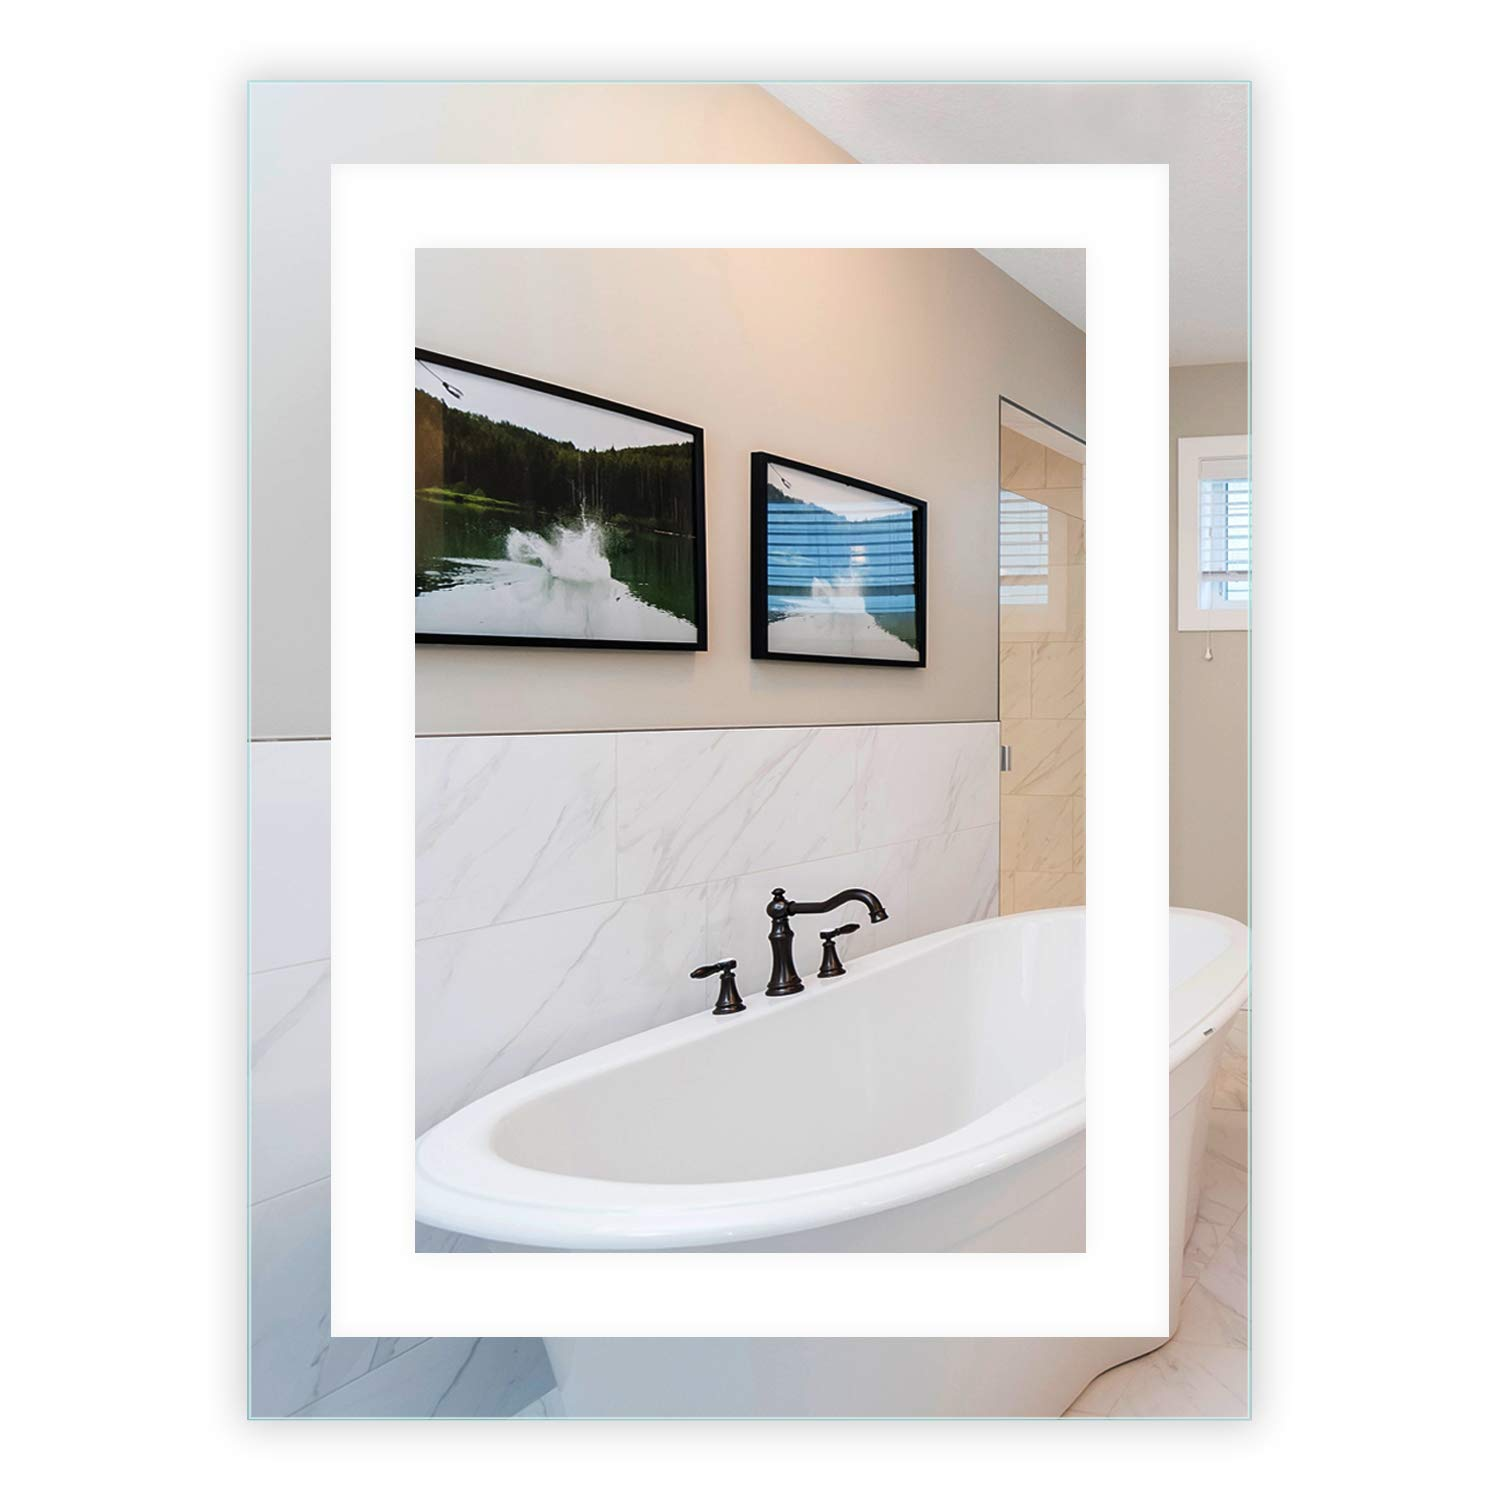 LED Front-Lighted Bathroom Vanity Mirror: 24'' Wide x 32'' Tall - Commercial Grade - Rectangular - Wall-Mounted by Mirrors and Marble